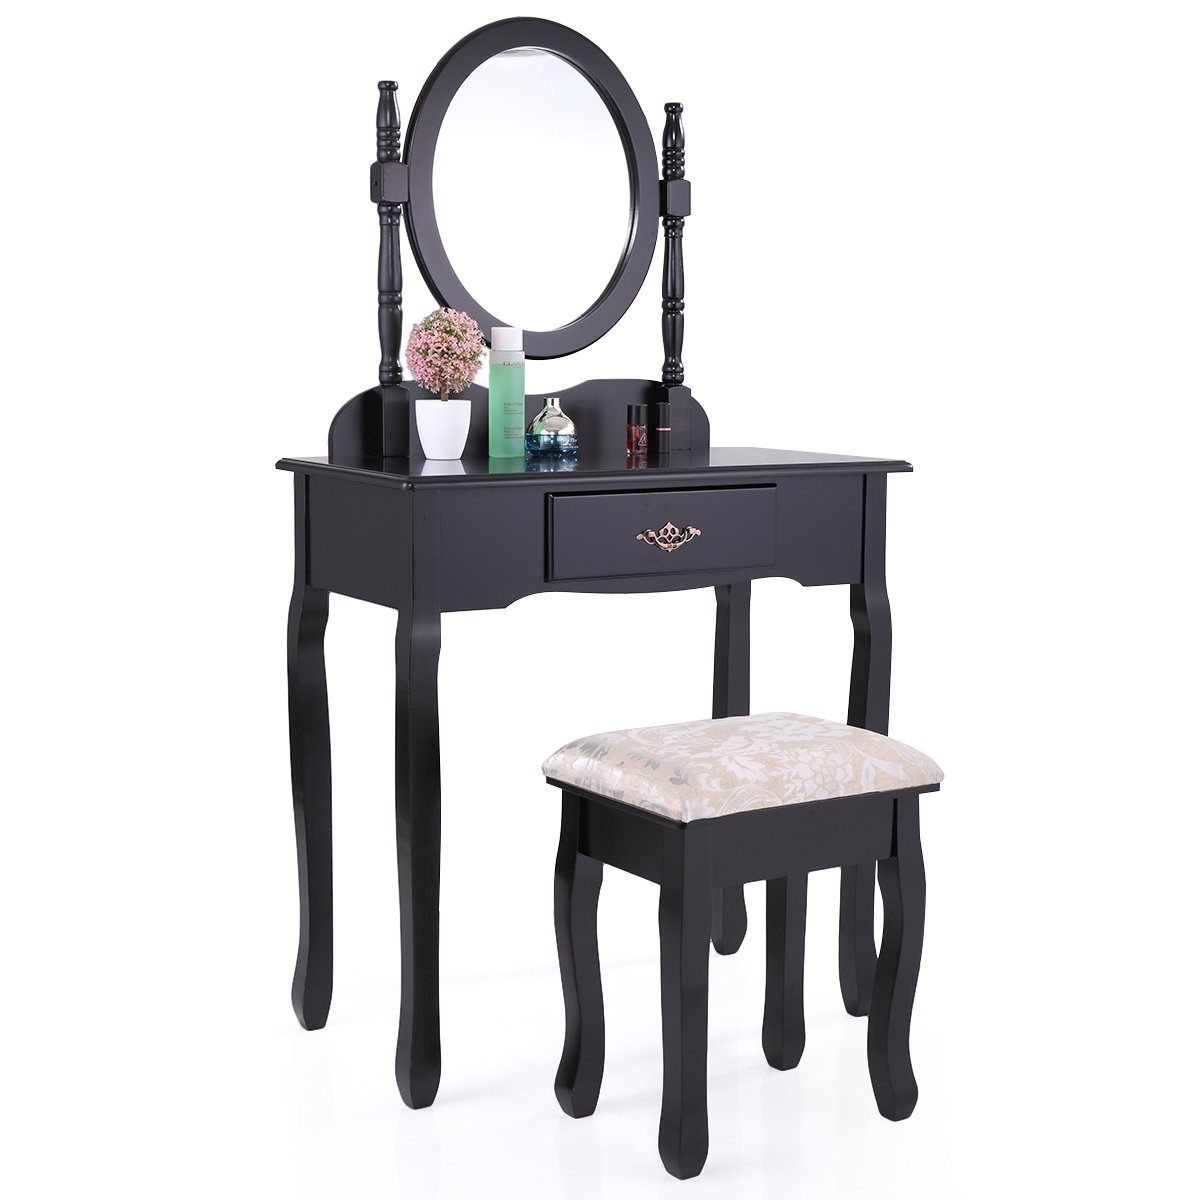 LAZYMOON Vanity MDF Makeup Table Set Dressing Jewelry Desk w/1 Drawer and Oval Mirror, Black